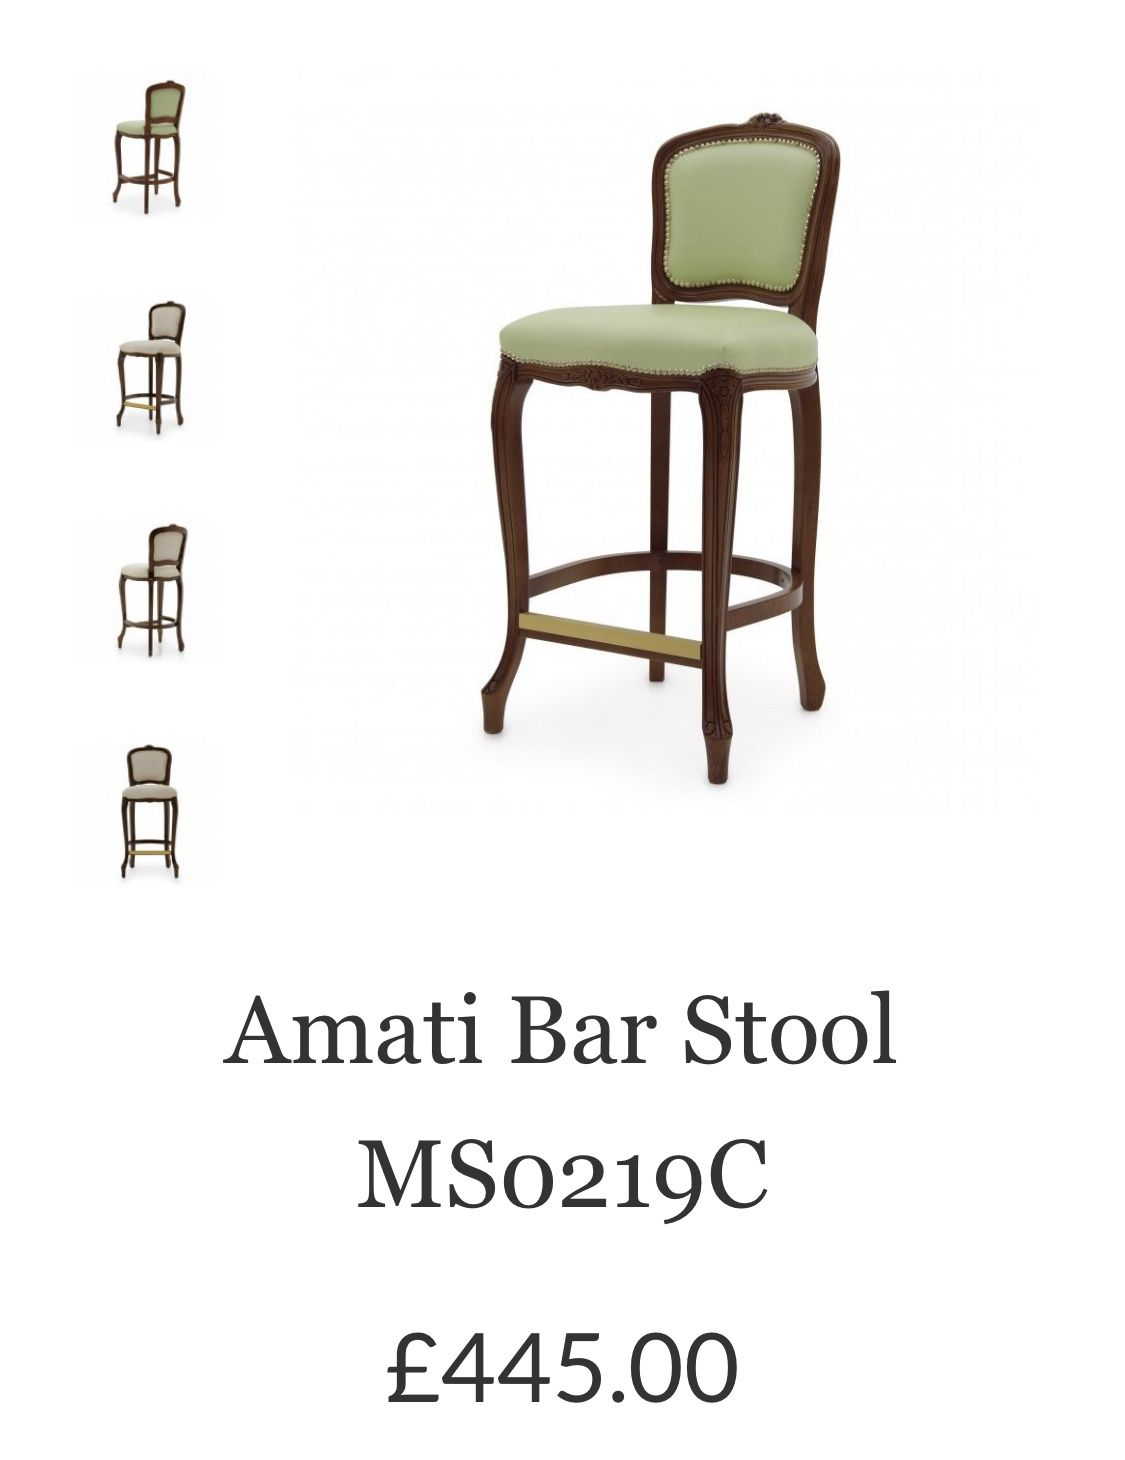 55da709176b3 The  wood finish and  upholstery can be  customised to achieve an  exclusive